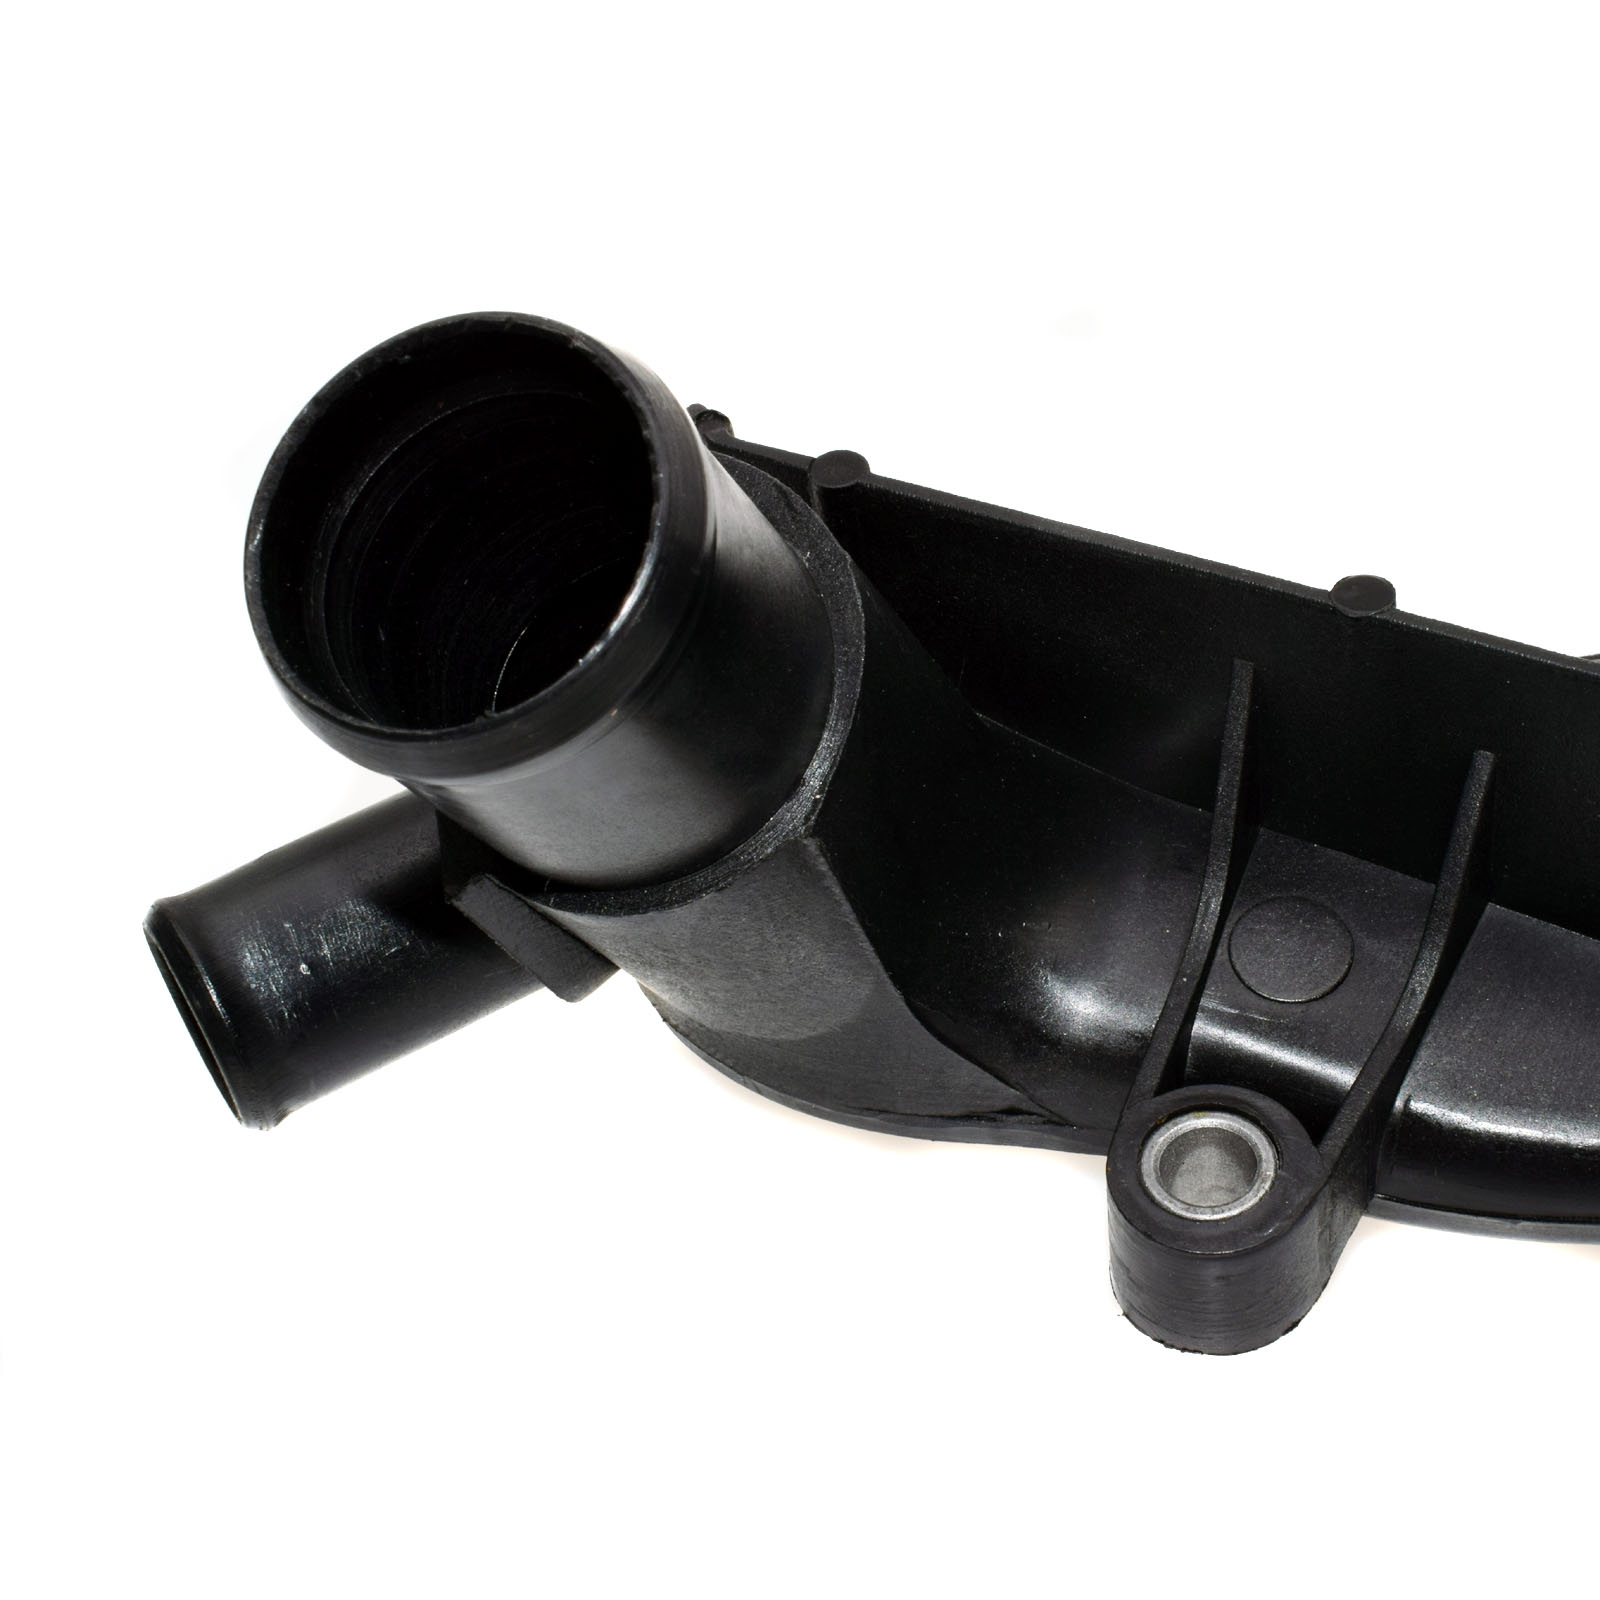 wolfigo thermostat housing for audi a6 allroad quattro v6 vw passat 078121121k 078 121 121 k in thermostats parts from automobiles motorcycles on  [ 1600 x 1600 Pixel ]